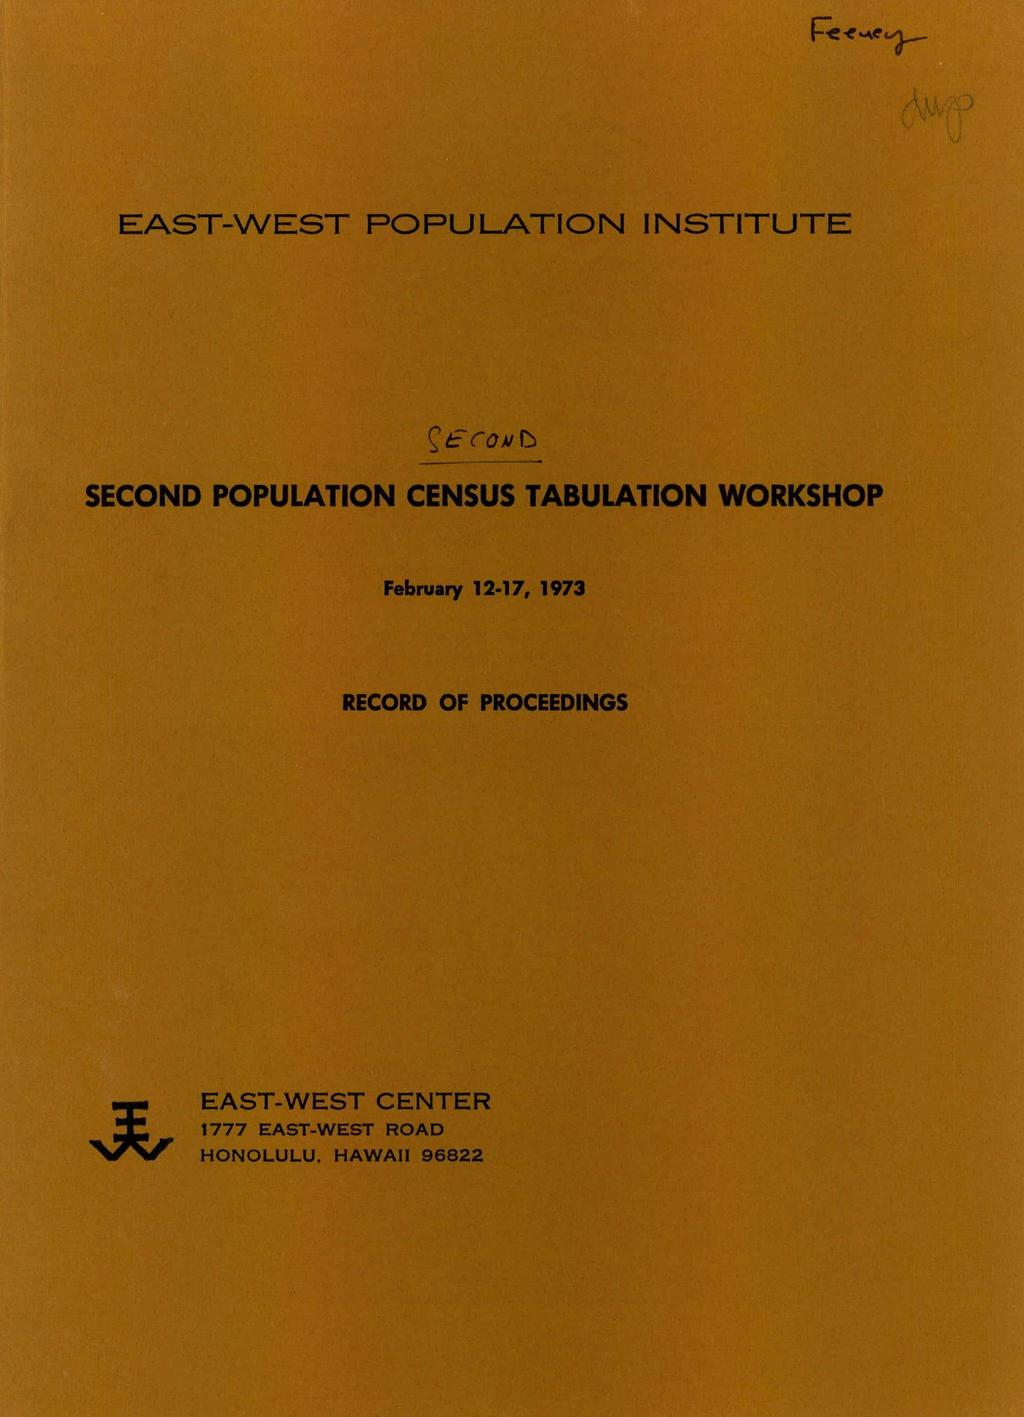 EAST-WEST POPULATION INSTITUTE SECOND POPULATION CENSUS TABULATION WORKSHOP February